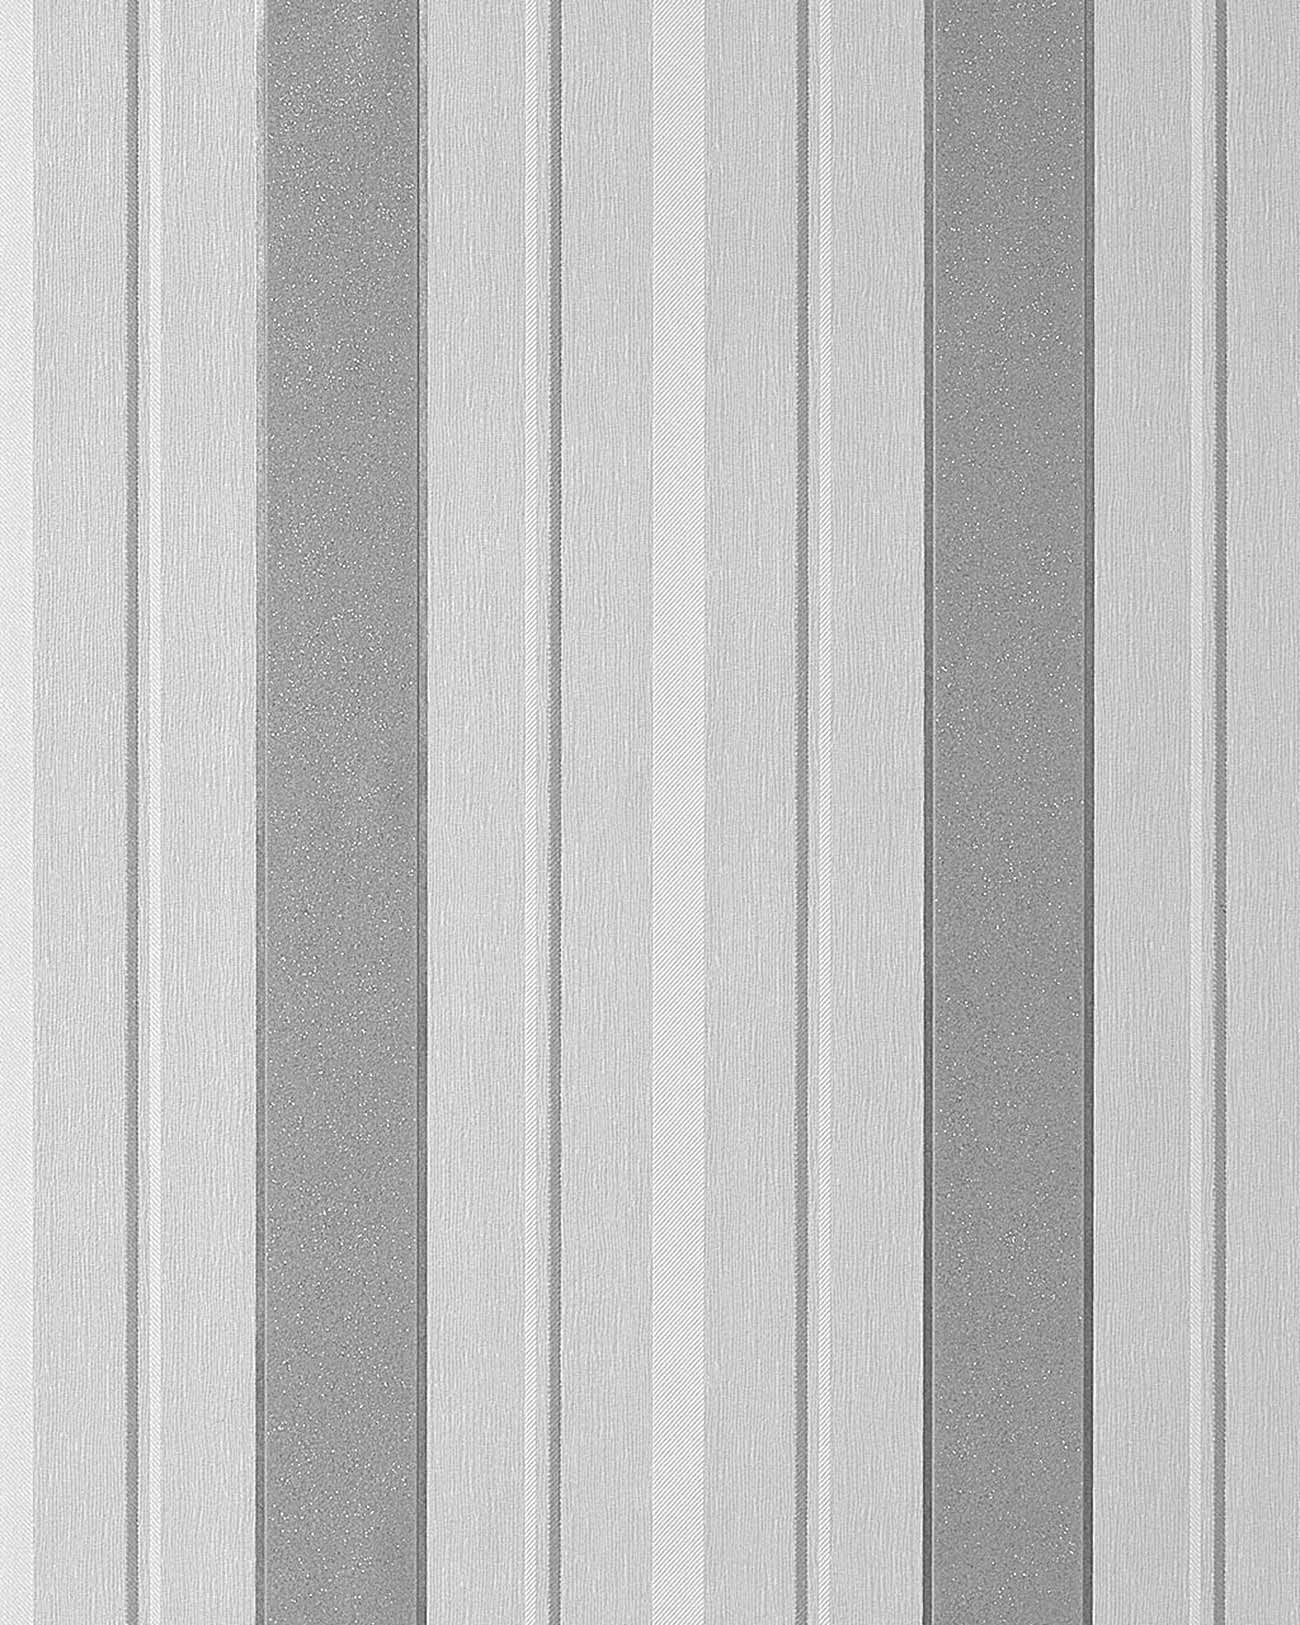 Edem 069 26 design wallpaper textured block stripes light for Gray vinyl wallpaper